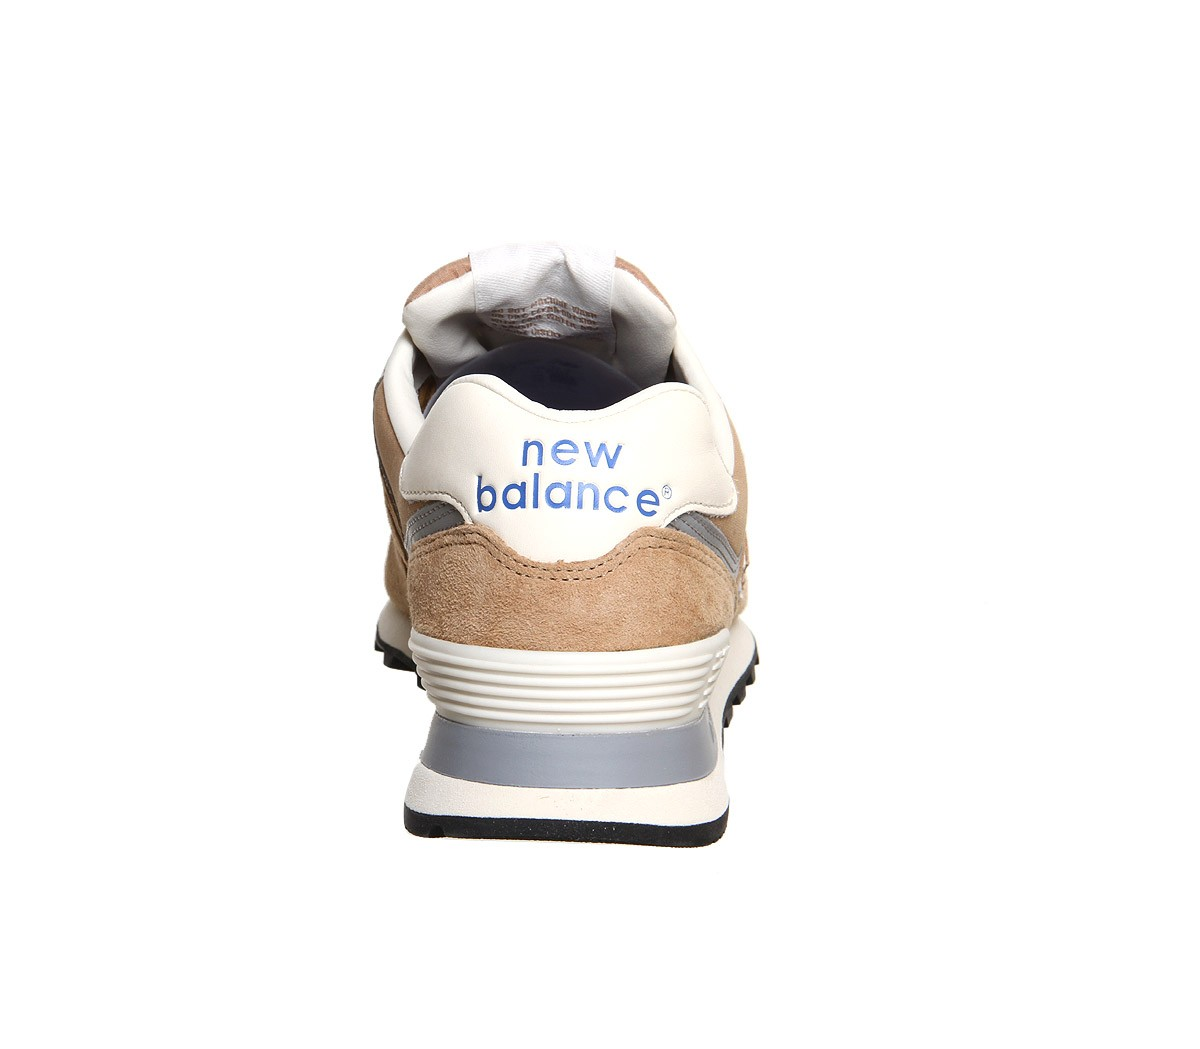 Homme New Balance M574 Daim/Textile Trainers Champagne Beige